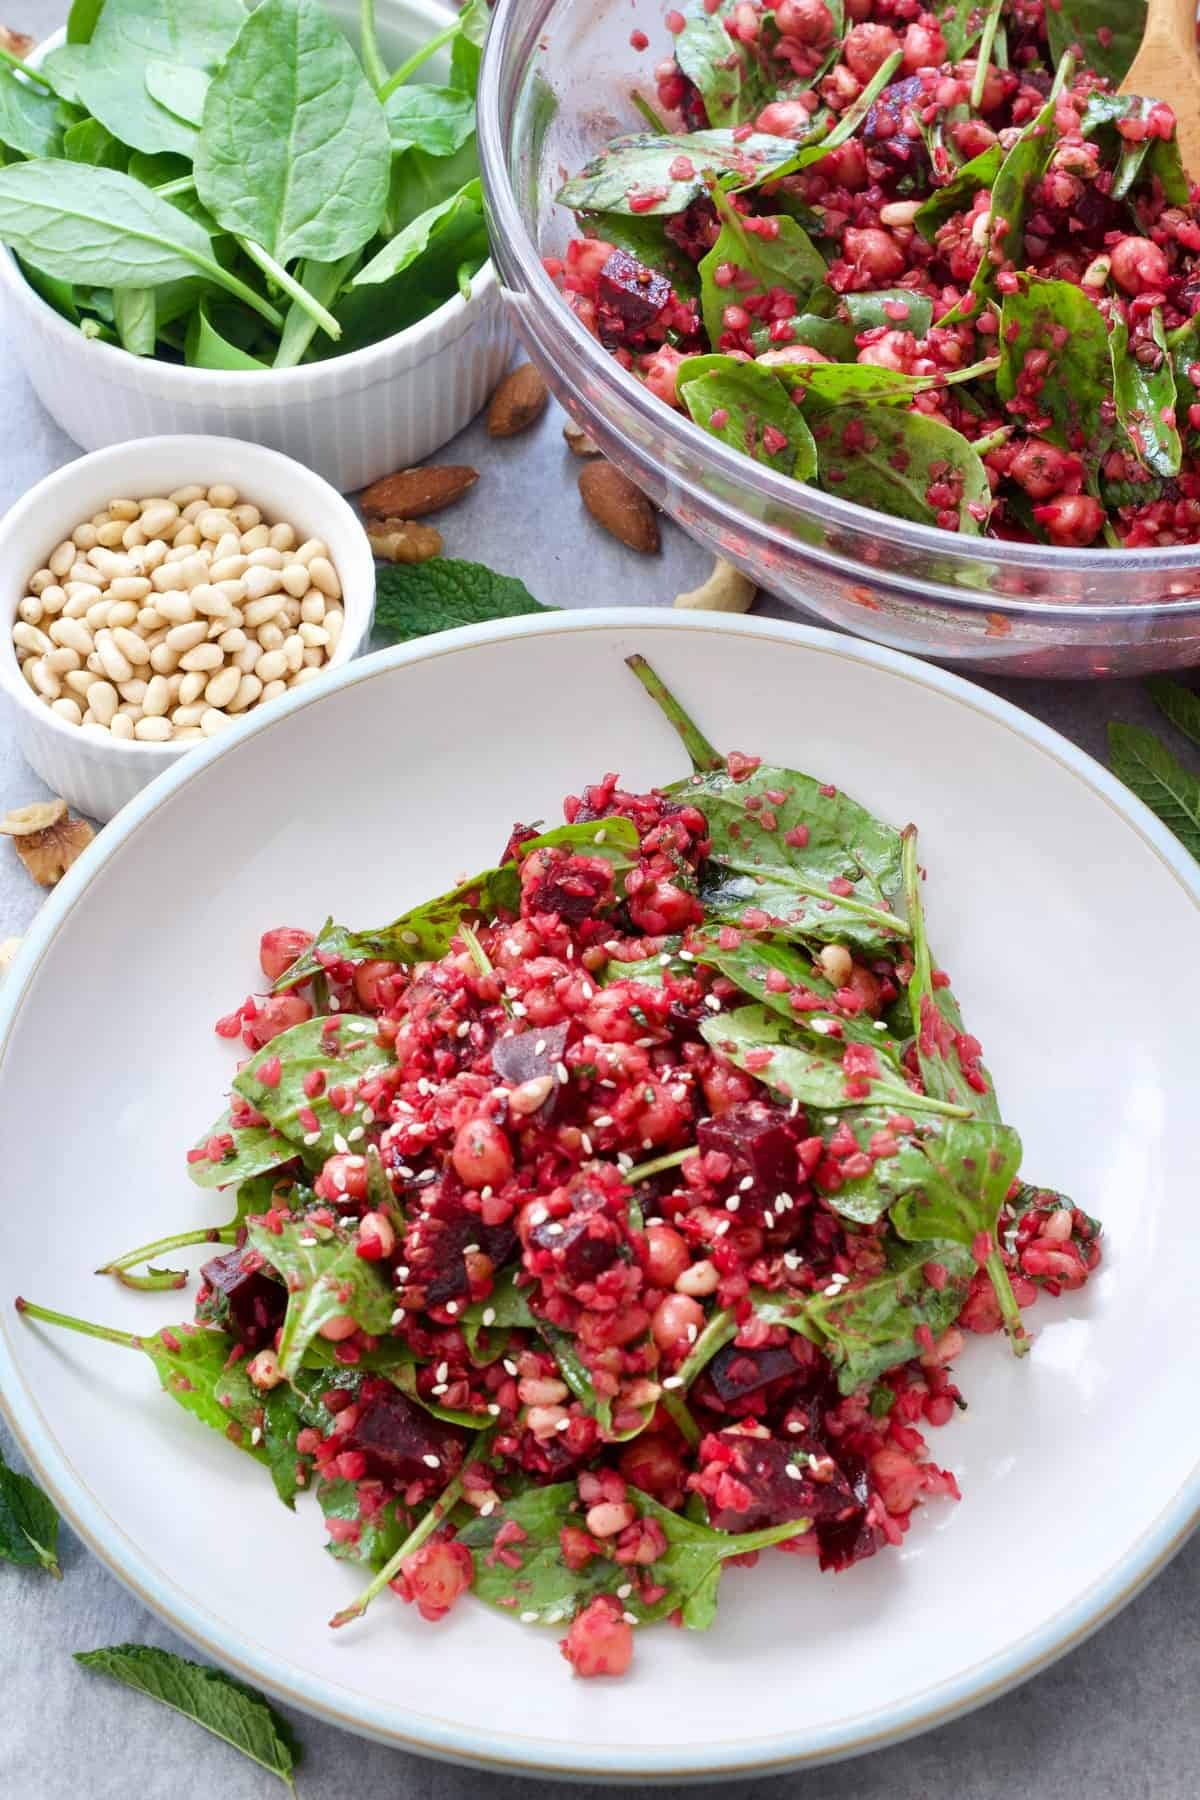 Beetroot Salad With Chickpeas